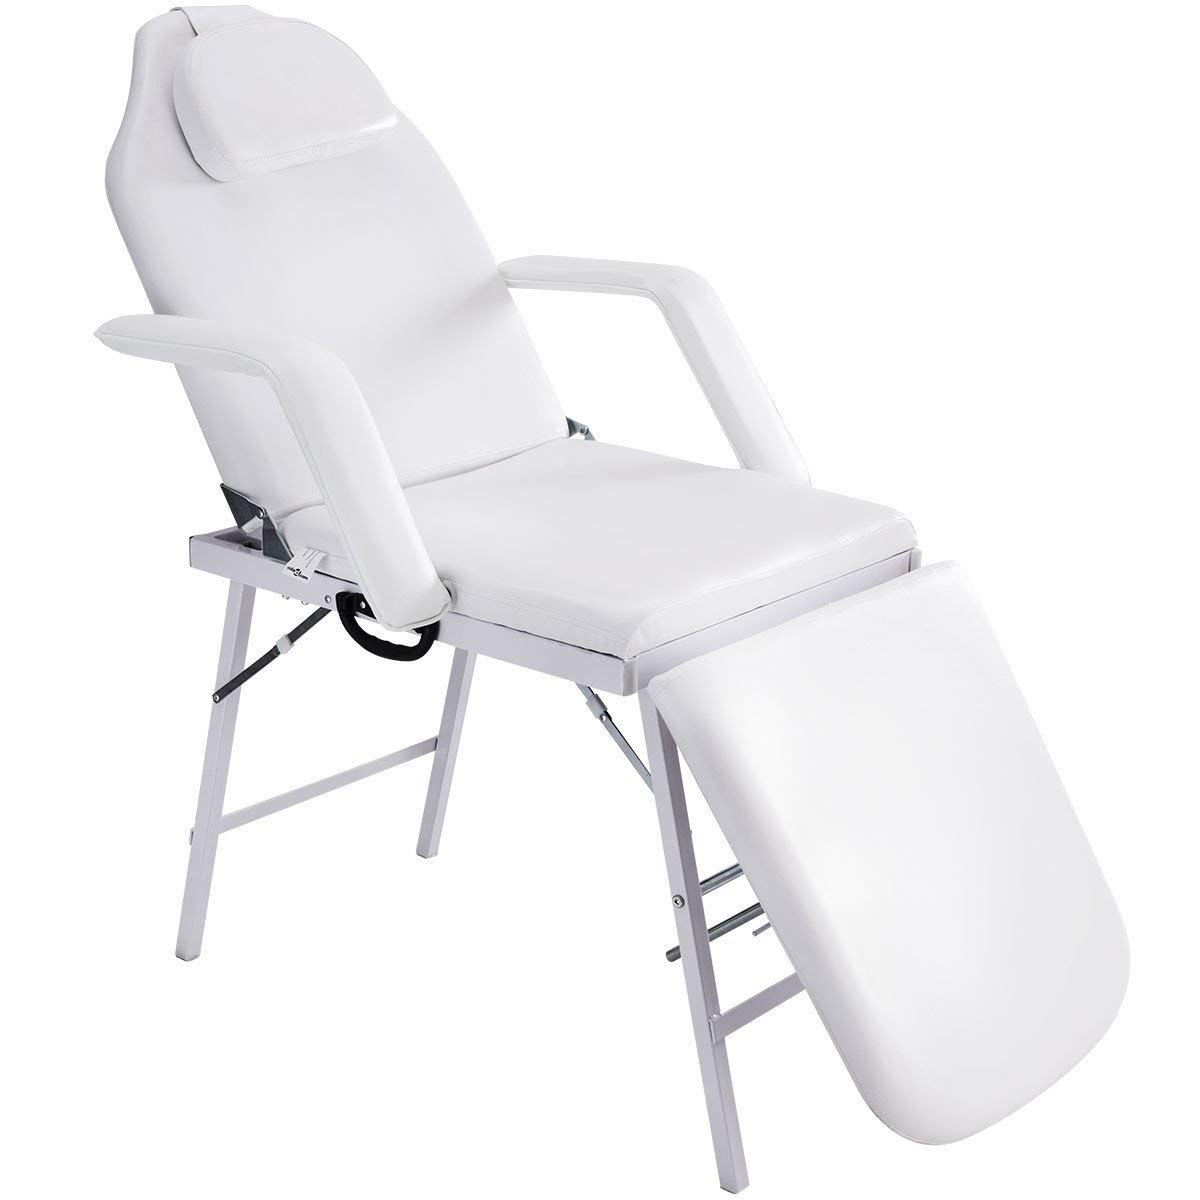 """White 73"""" Portable Bed Spa Salon Massage Tattoo Parlor Chair w/Adjustable Height"""